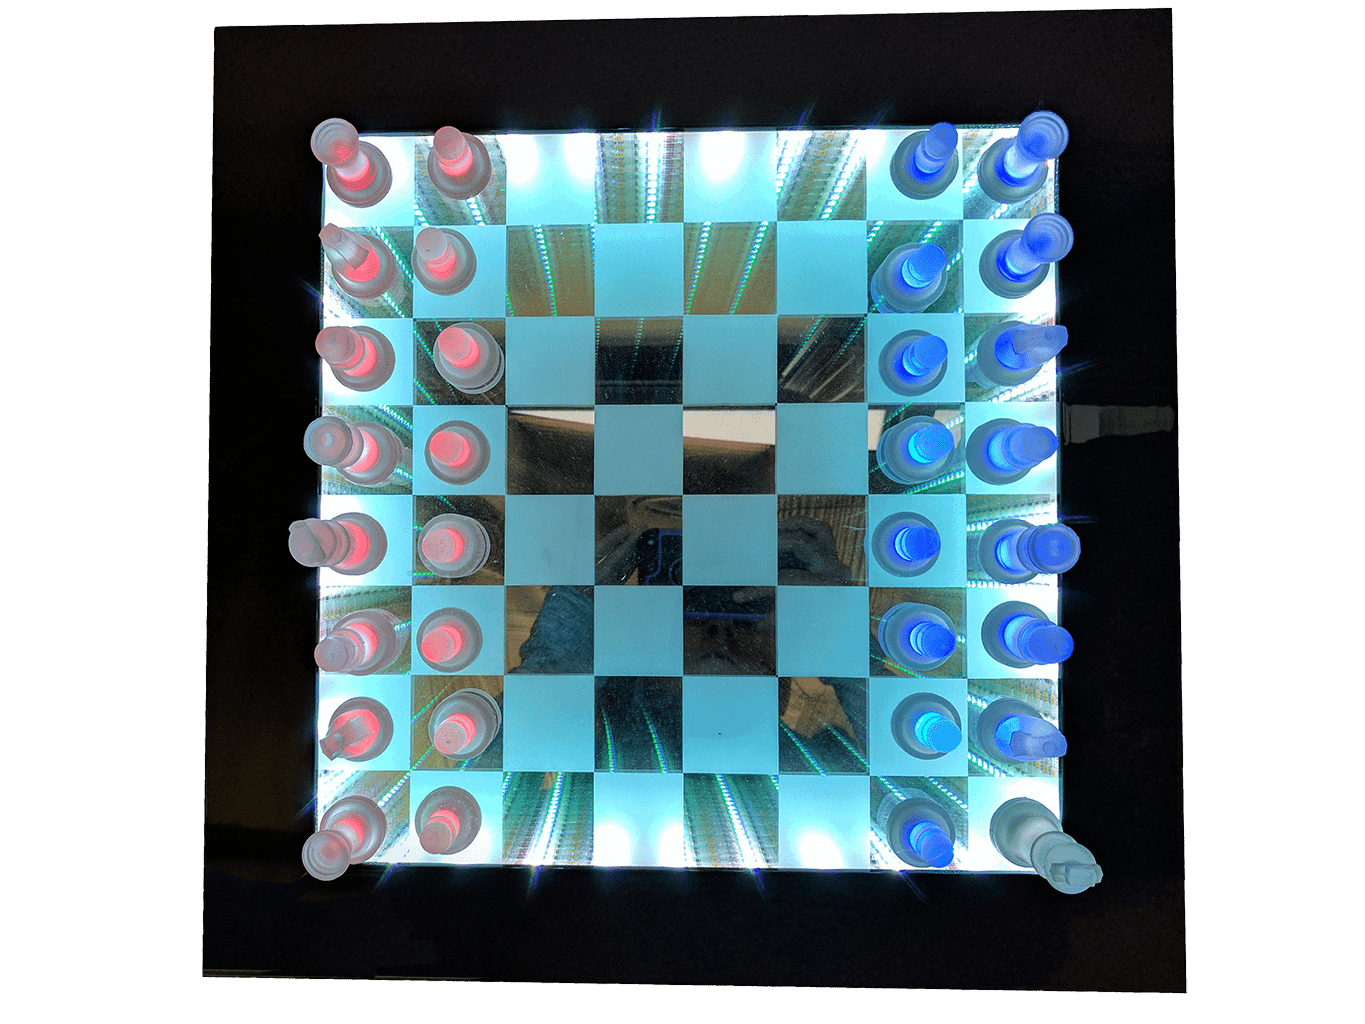 infinity mirror chess board